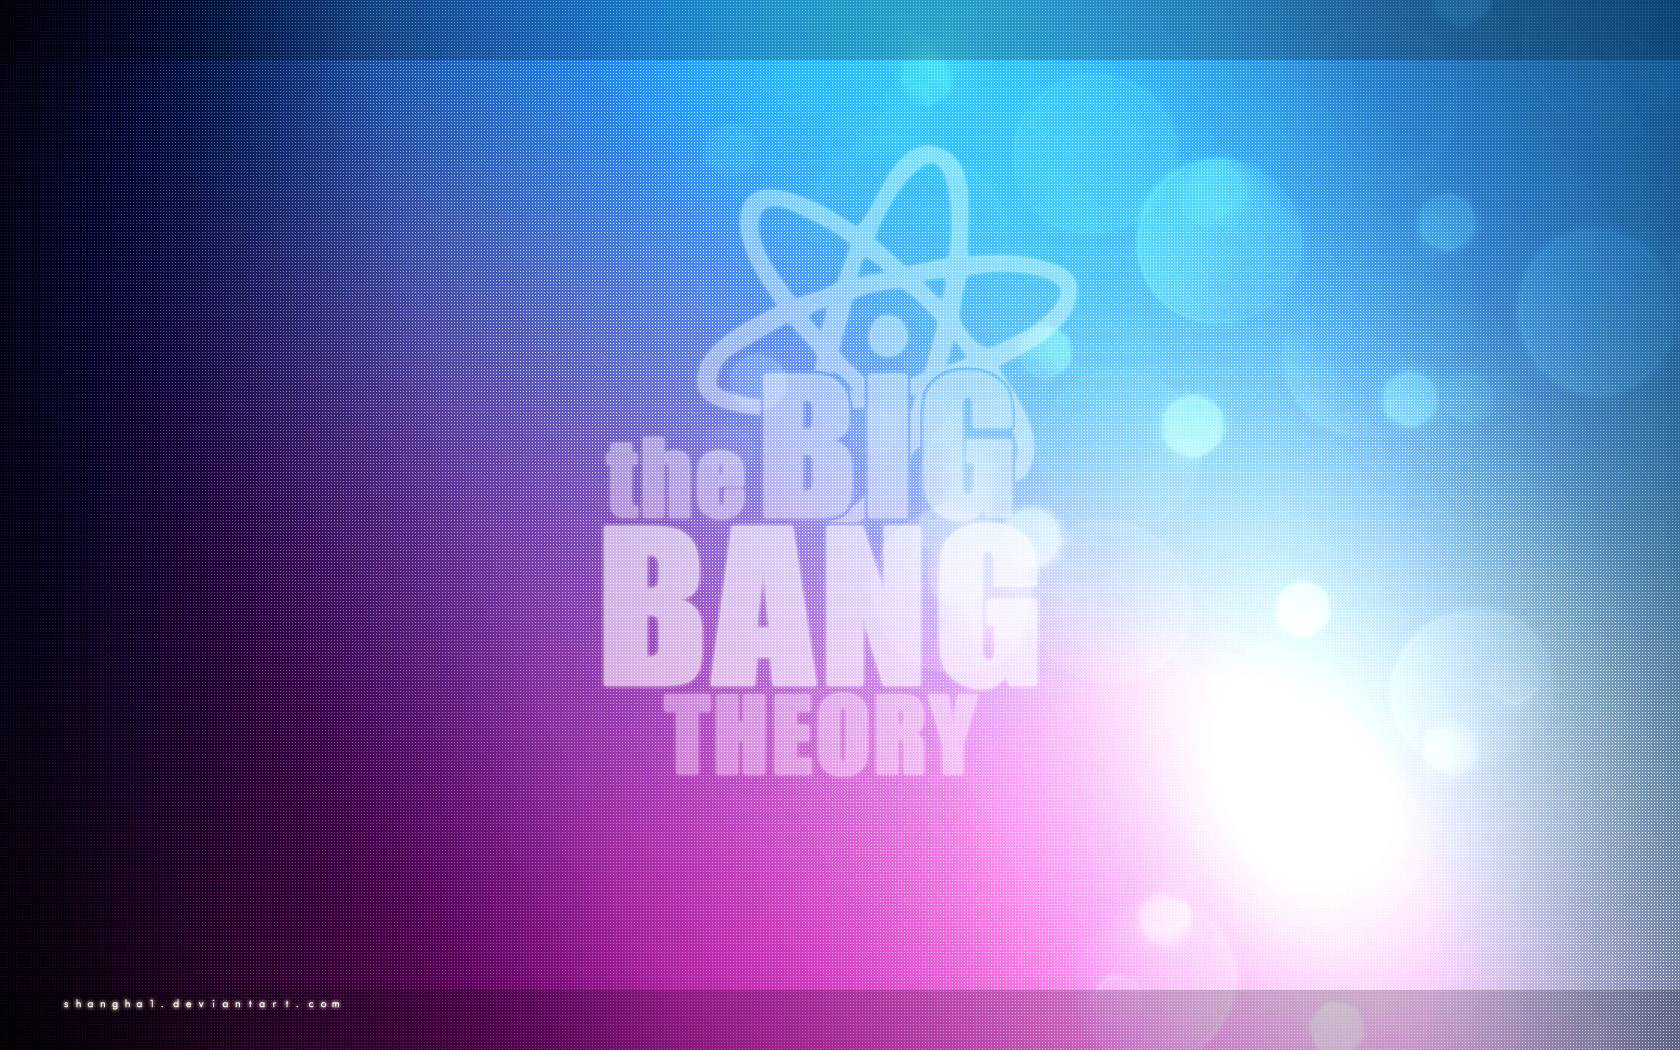 Title Wallpaper - The Big Bang Theory Wallpaper (10843643) - Fanpop